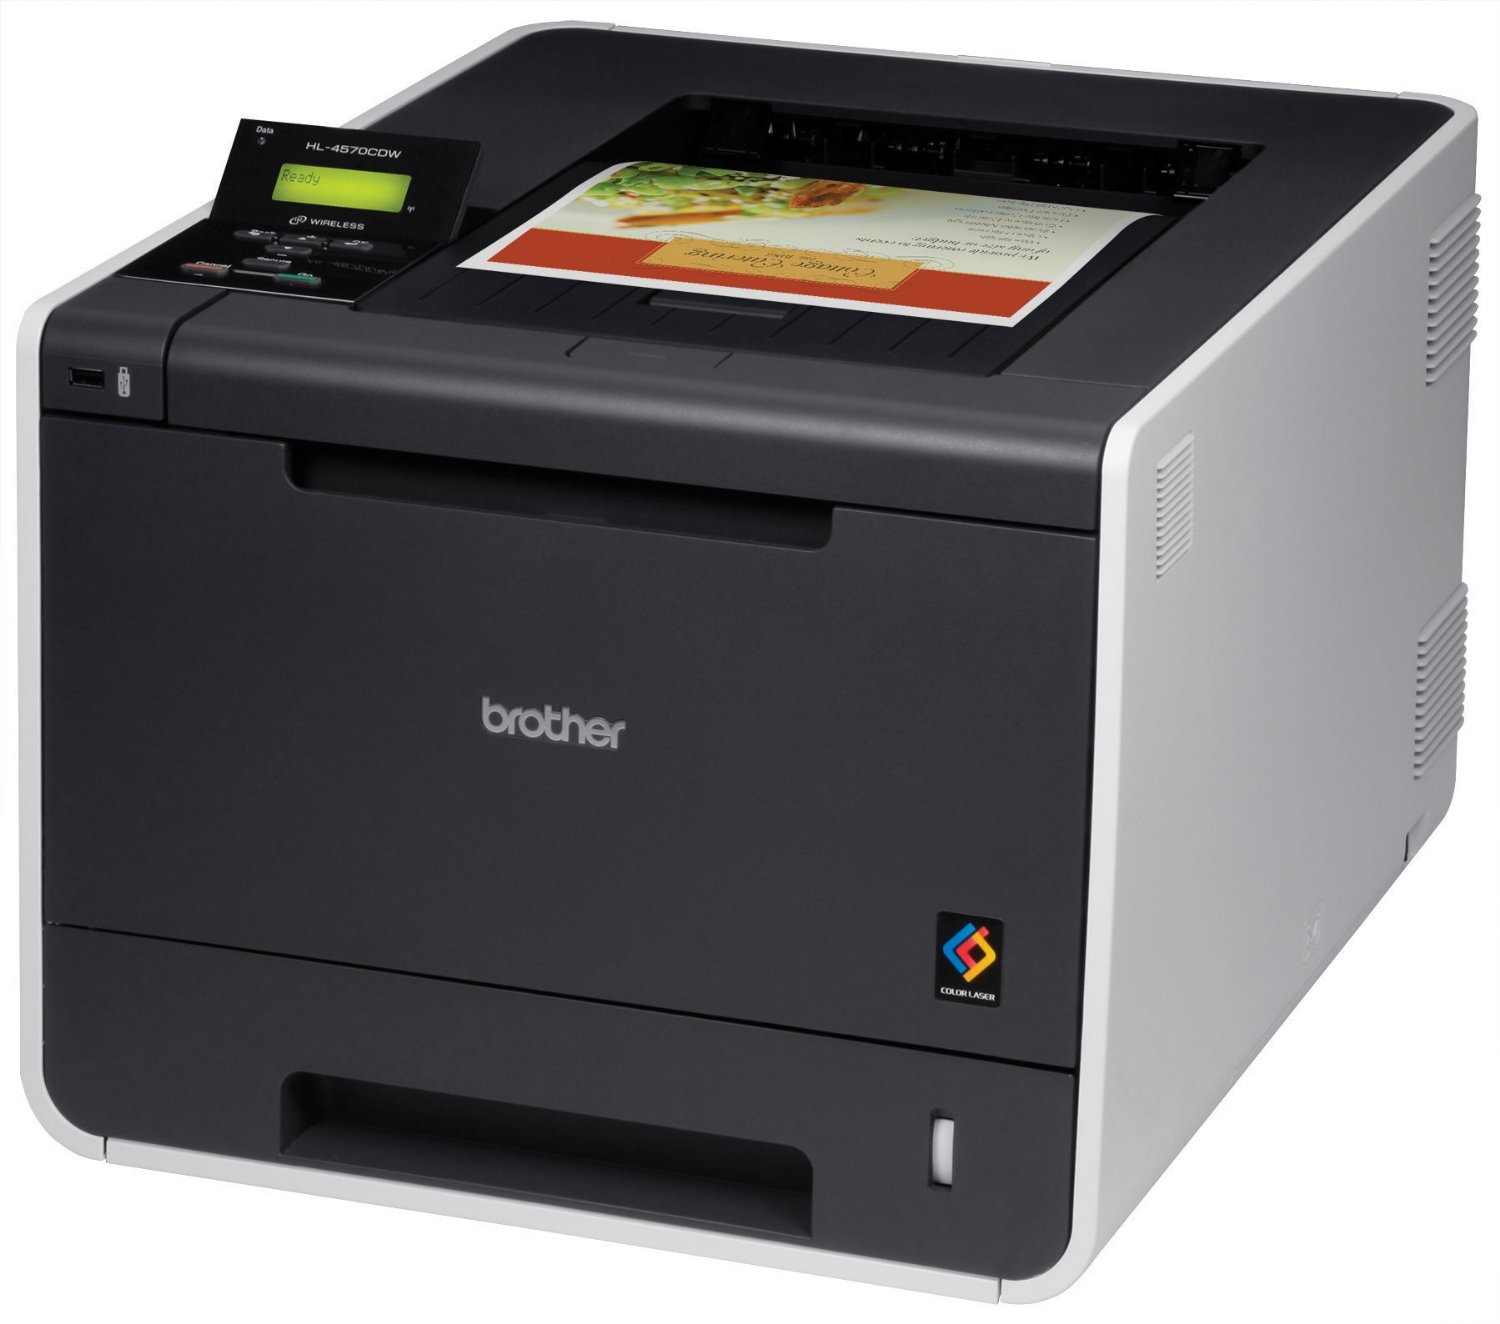 Brother HL4570CDW Color Laser Printer with Wireless Networking and Duplex-sale-01